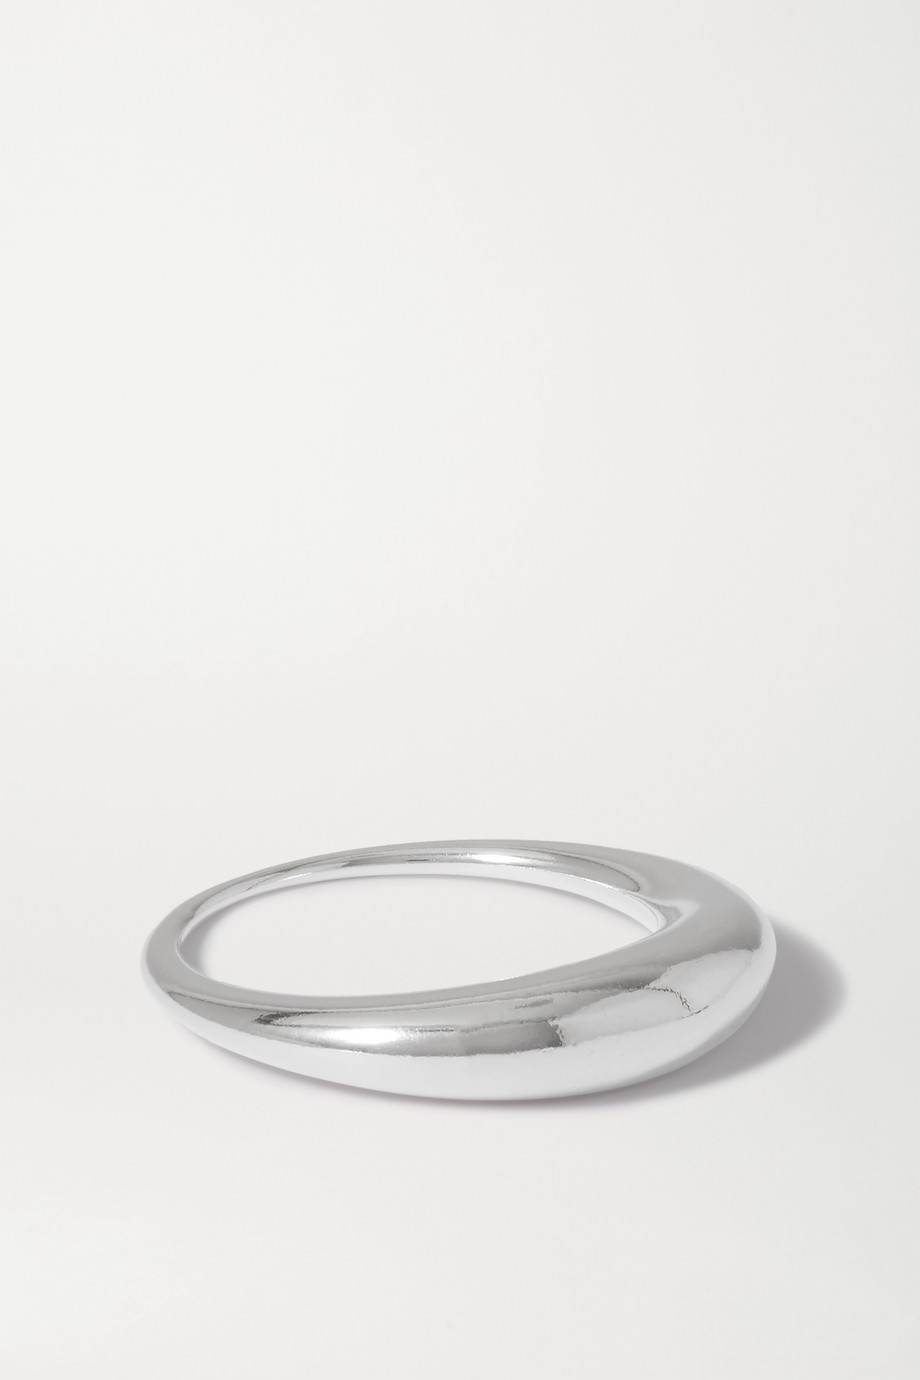 Saskia Diez + NET SUSTAIN Wire silver ring